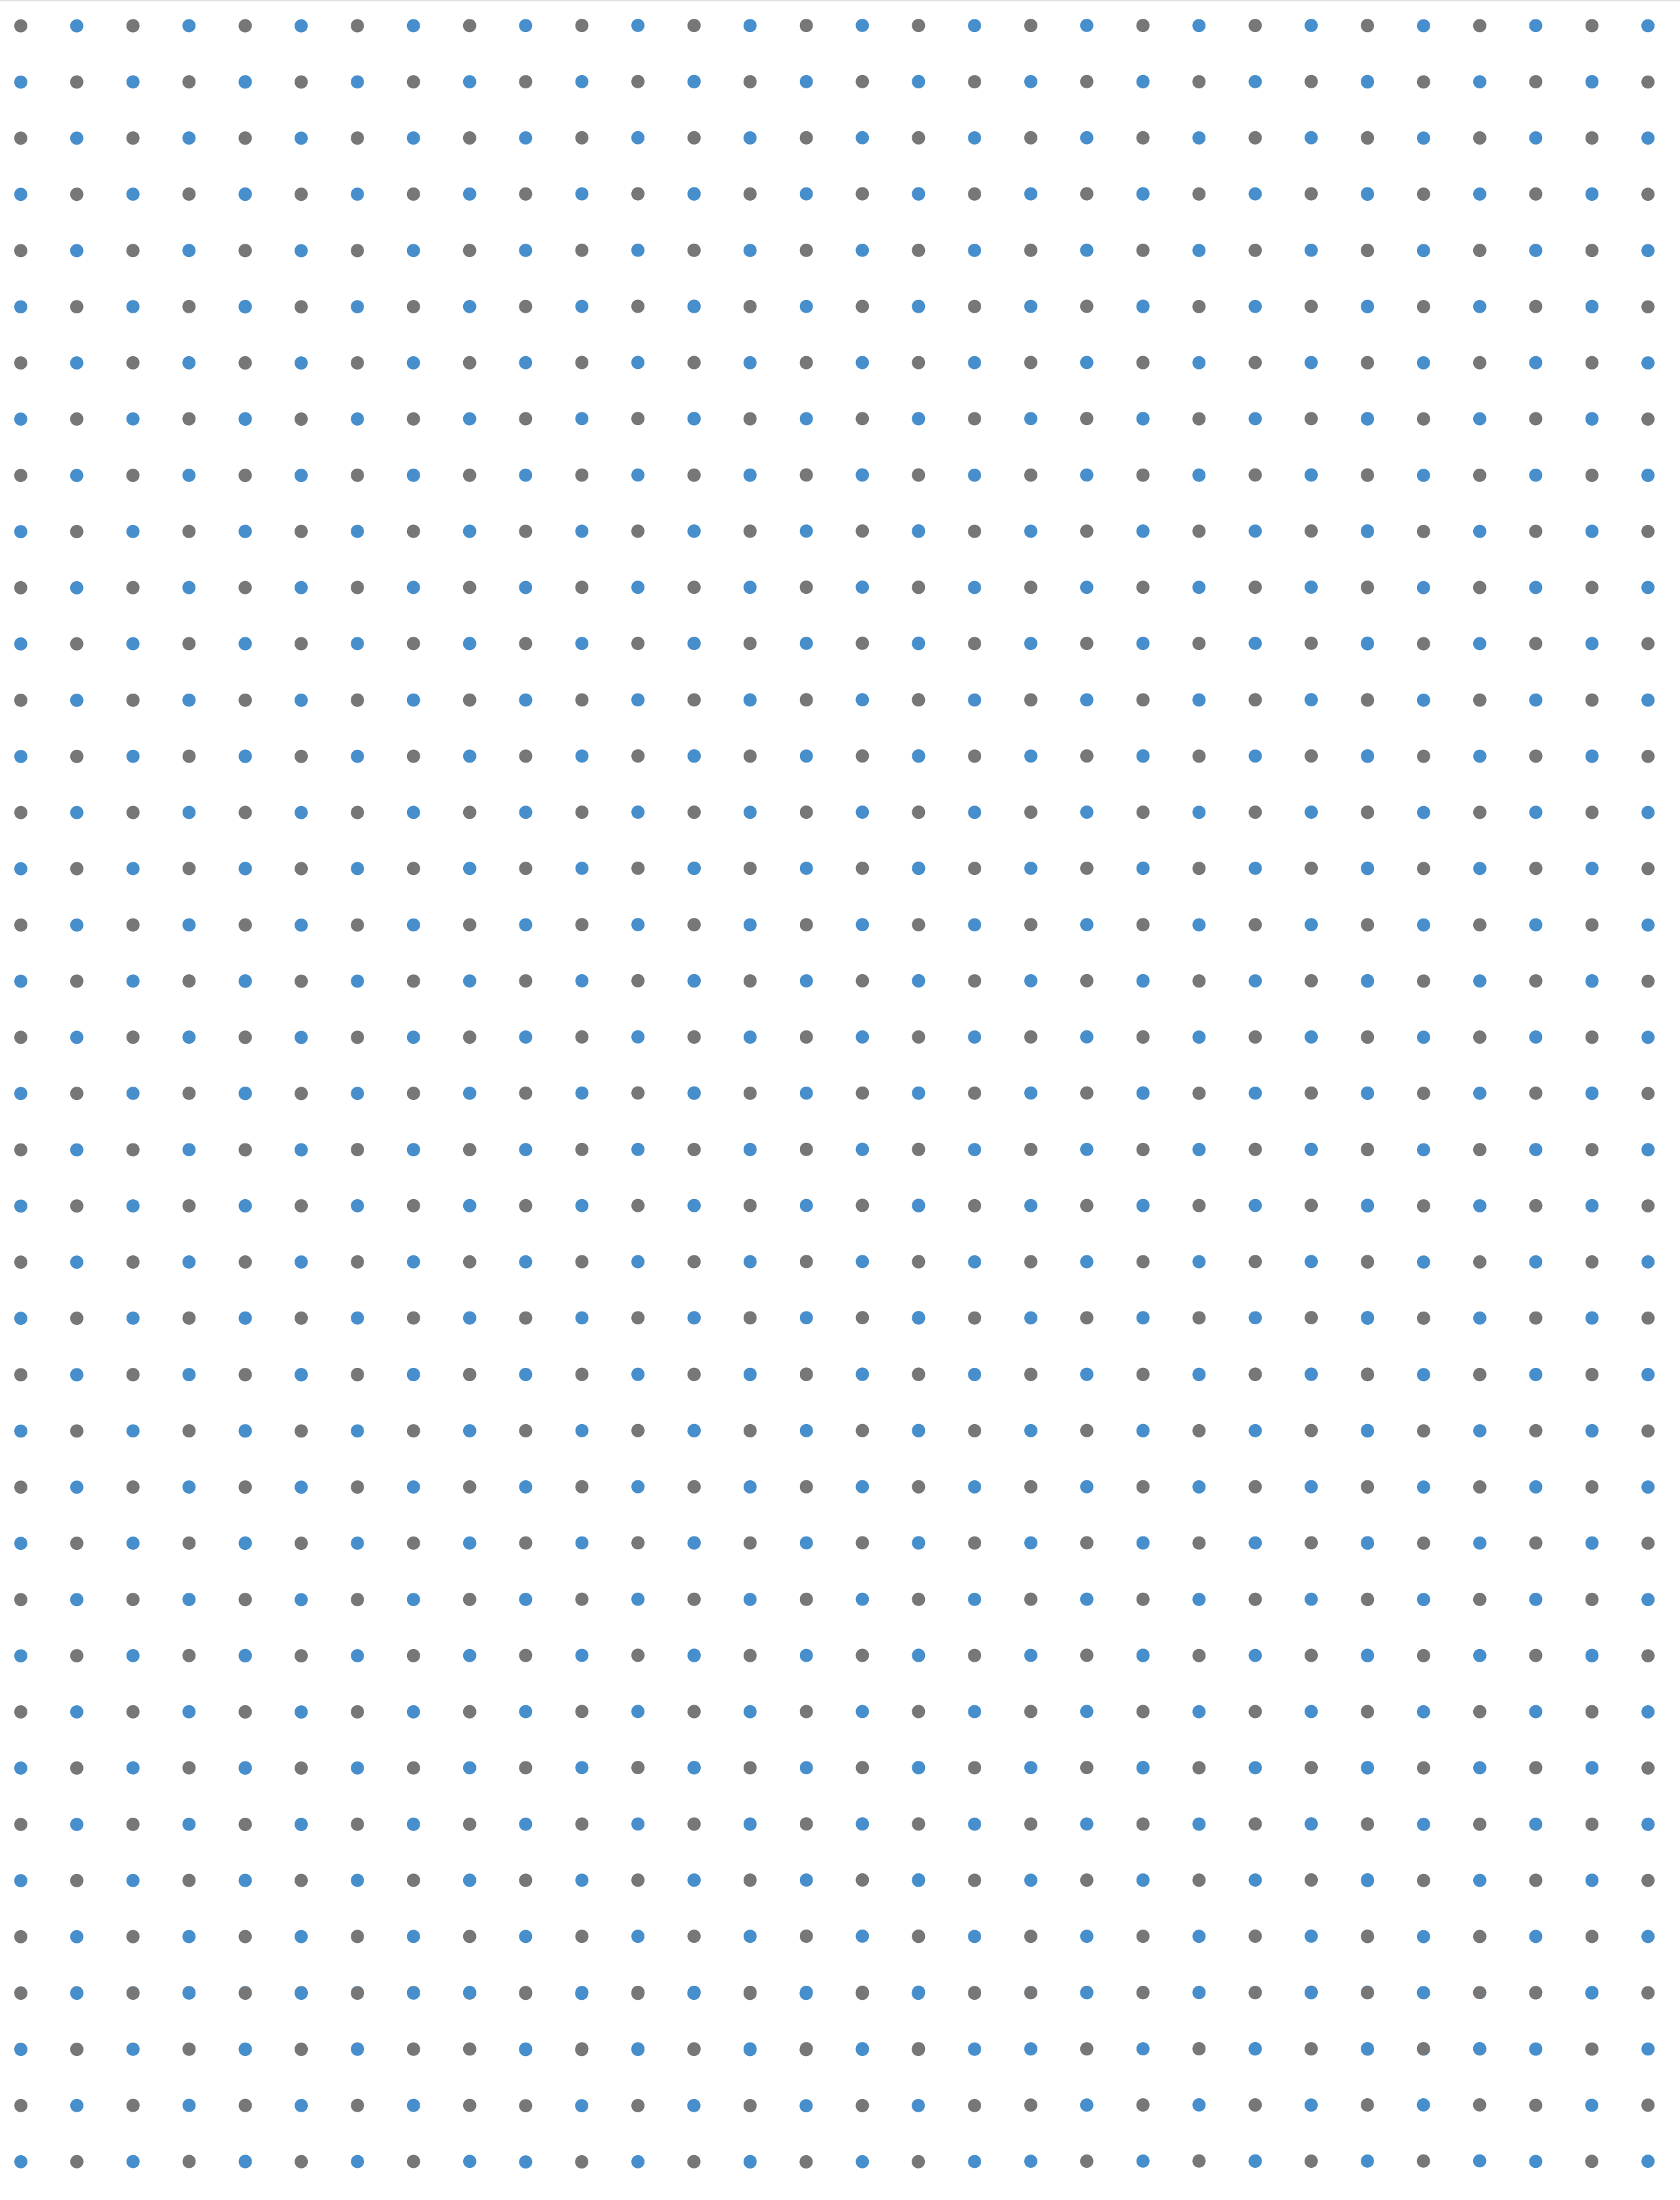 Free Printable Dot Grid Paper With And Without Background